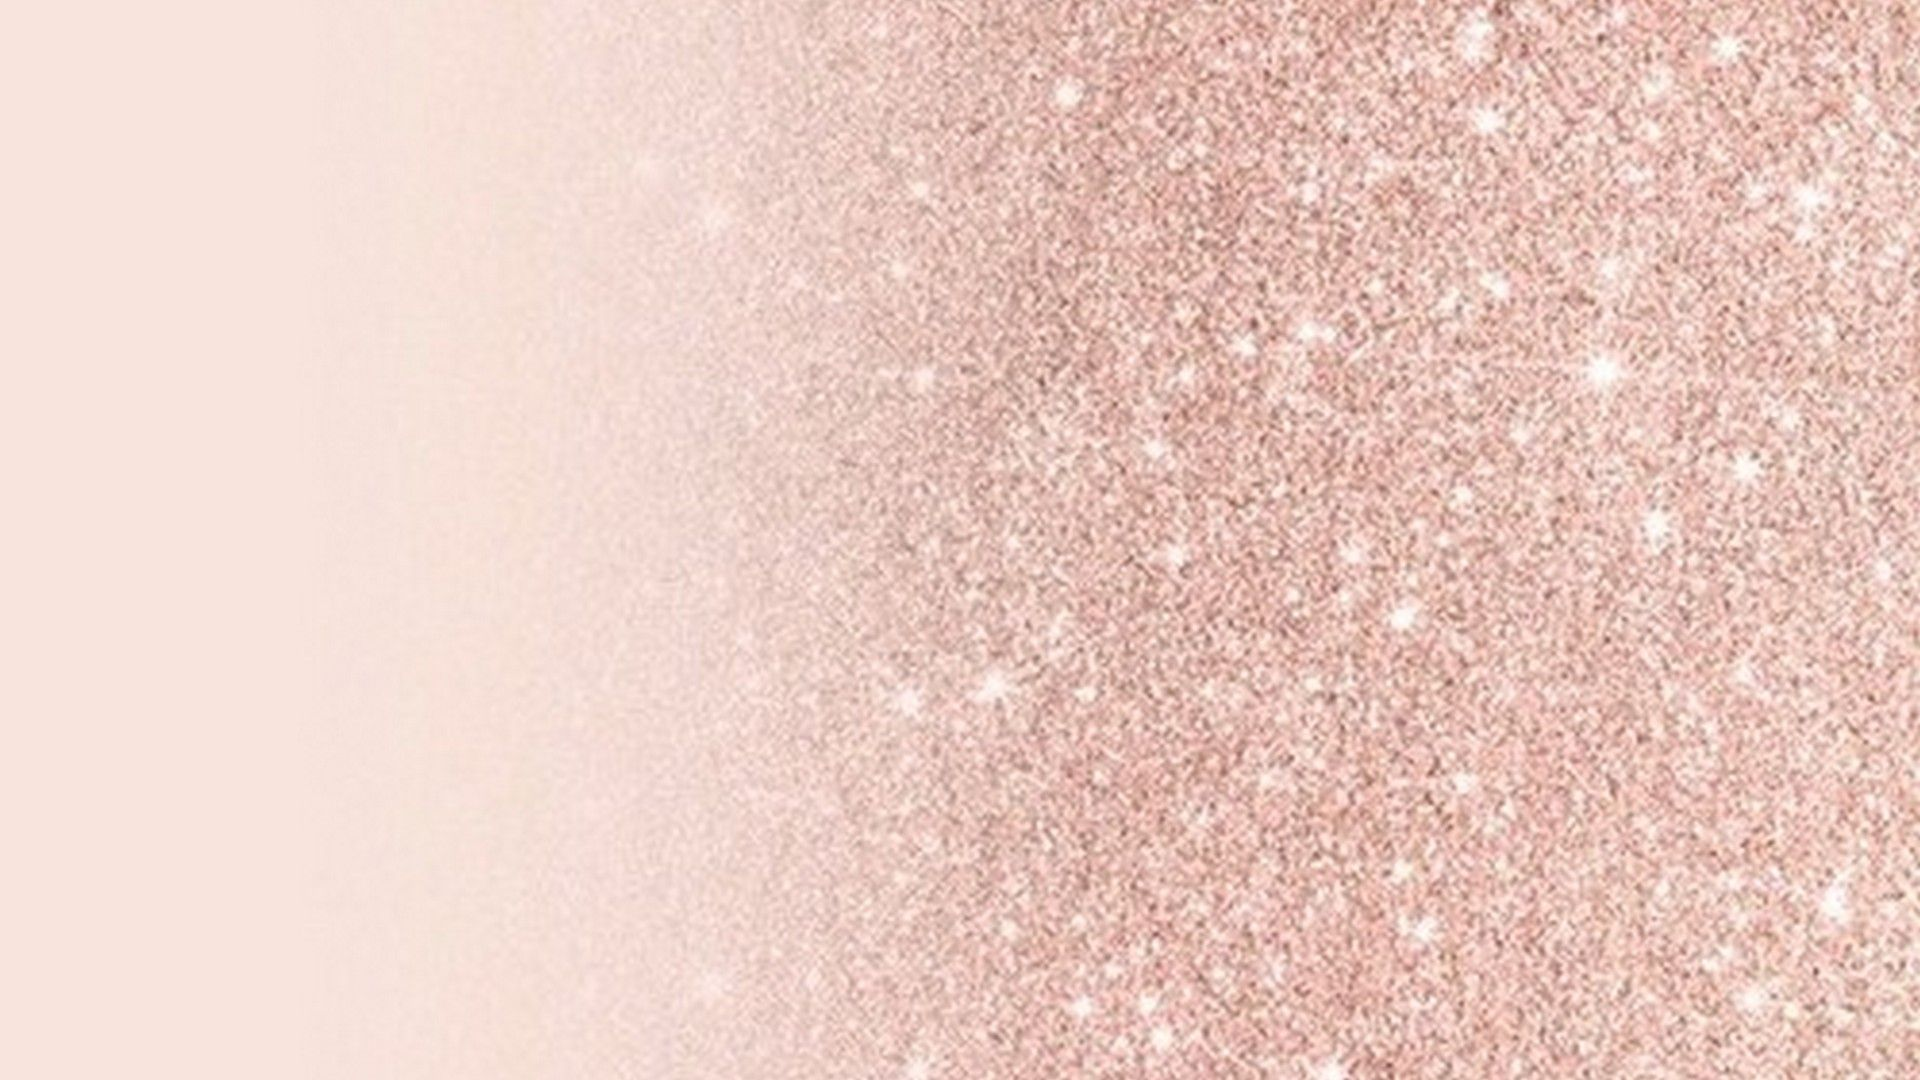 Wallpaper rose gold glitter desktop best hd wallpapers - Rose gold glitter iphone wallpaper ...